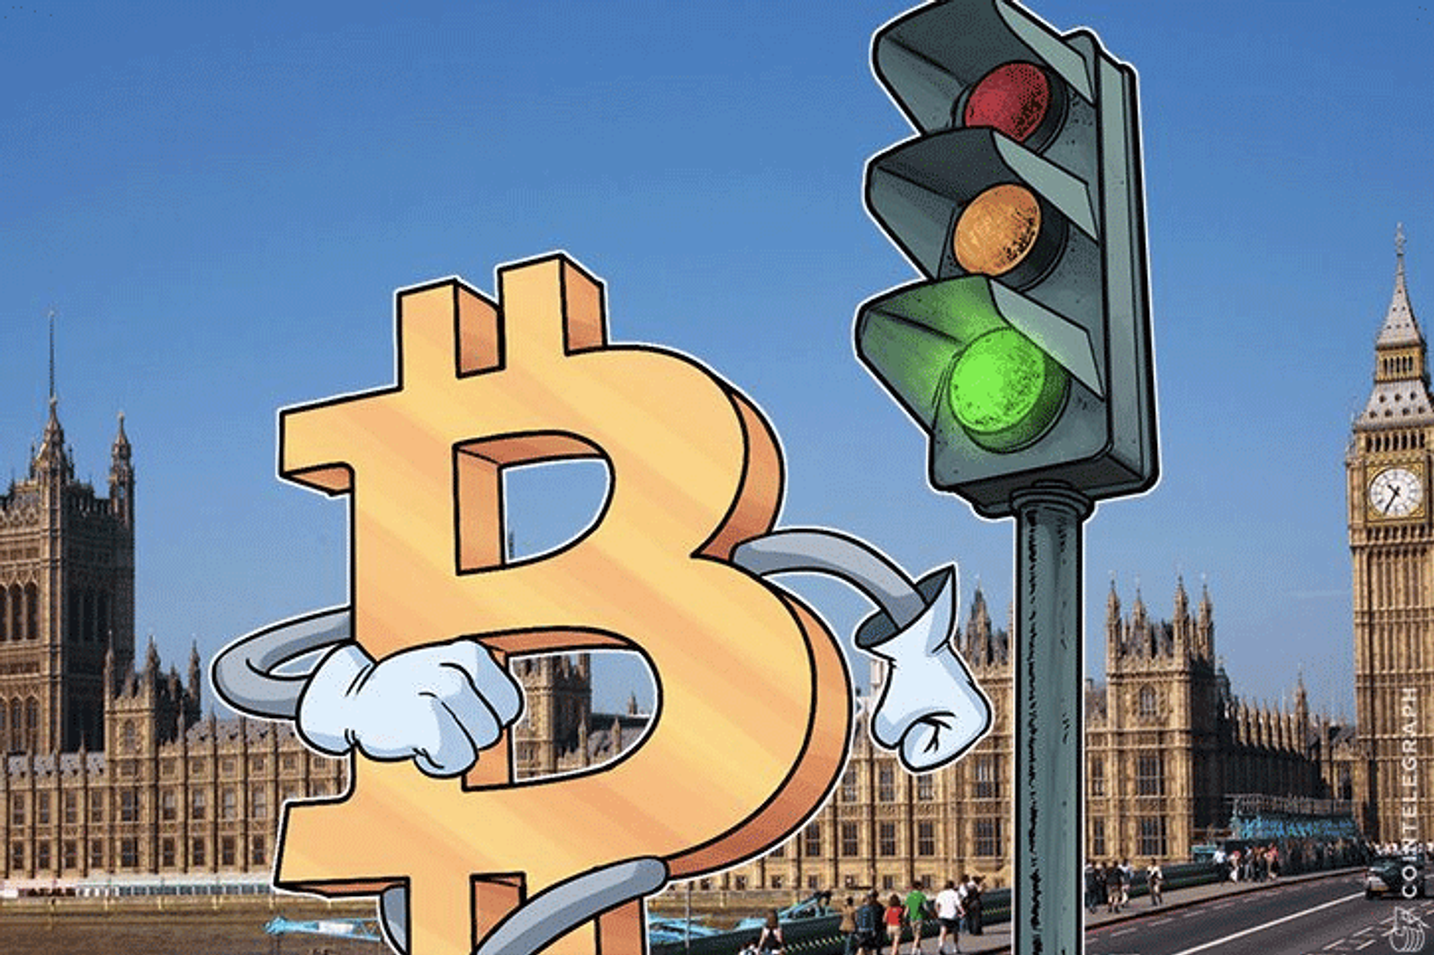 eToro Adds Ethereum Classic, Advertises Crypto In London